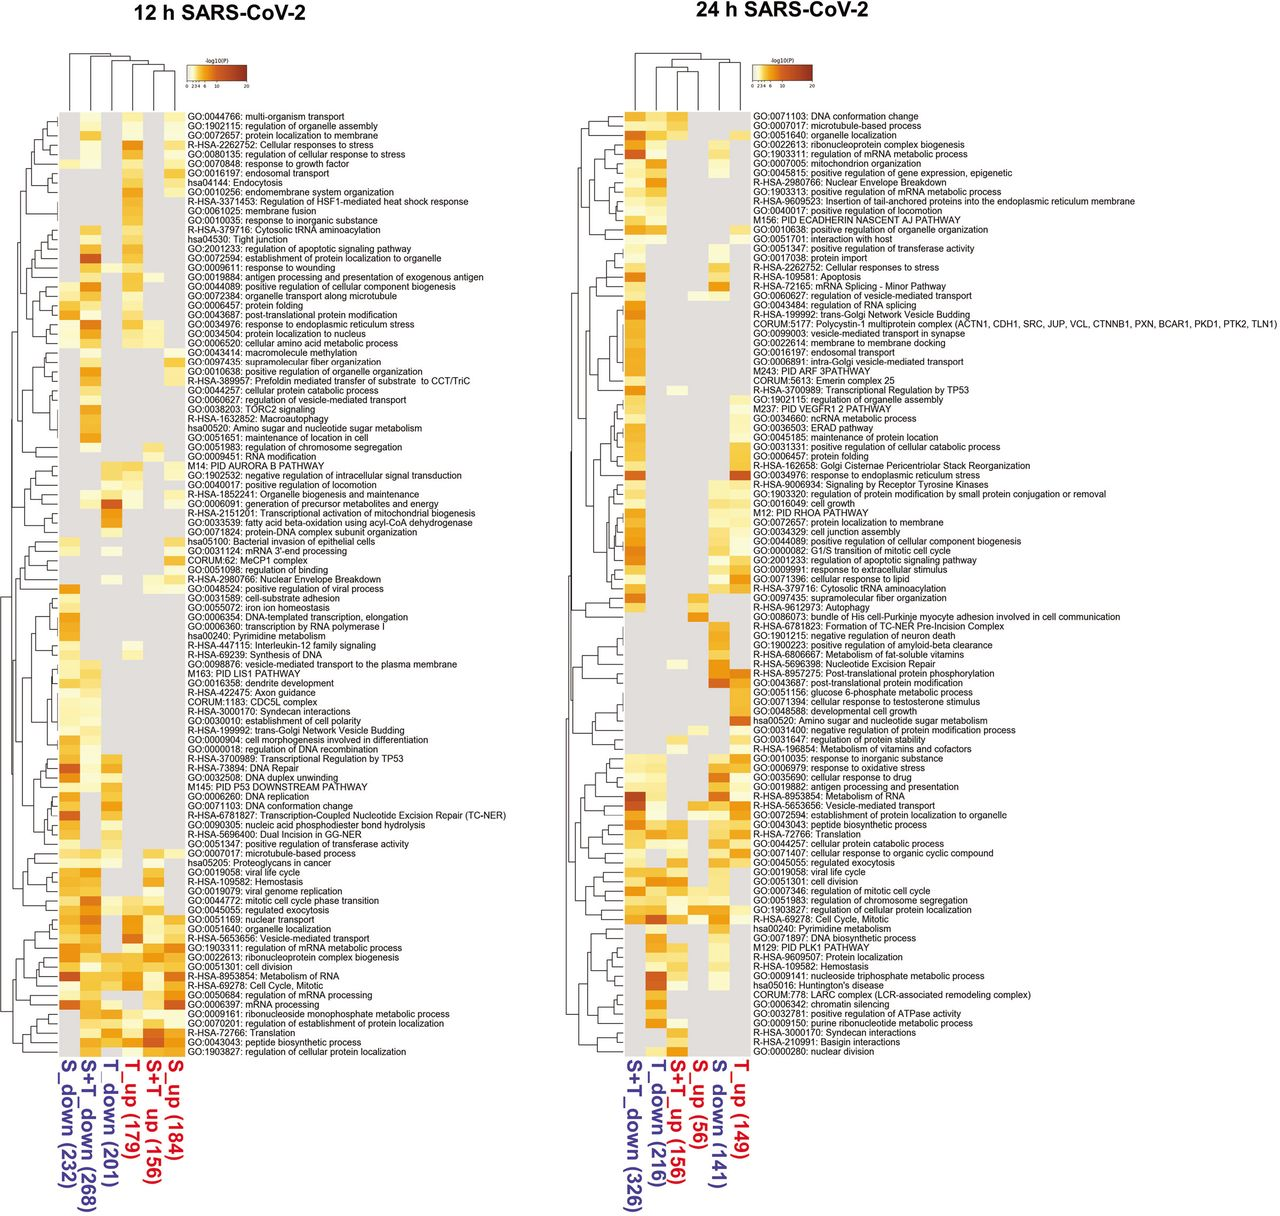 Top pathways regulated by MERS-CoV, SARS-CoV-2 or thapsigargin. (A) Top ten enriched pathways containing up- or downregulated DEPs extracted from the 100 enriched deregulated pathways shown in Fig. S3 / Fig. S4 . Colors indicate highly common categories. (B) Top 20 pathways enriched with thapsigargin alone or jointly by MERS-CoV, SARS-CoV-2 and thapsigargin according to the Venn diagram shown in Fig. 4F .